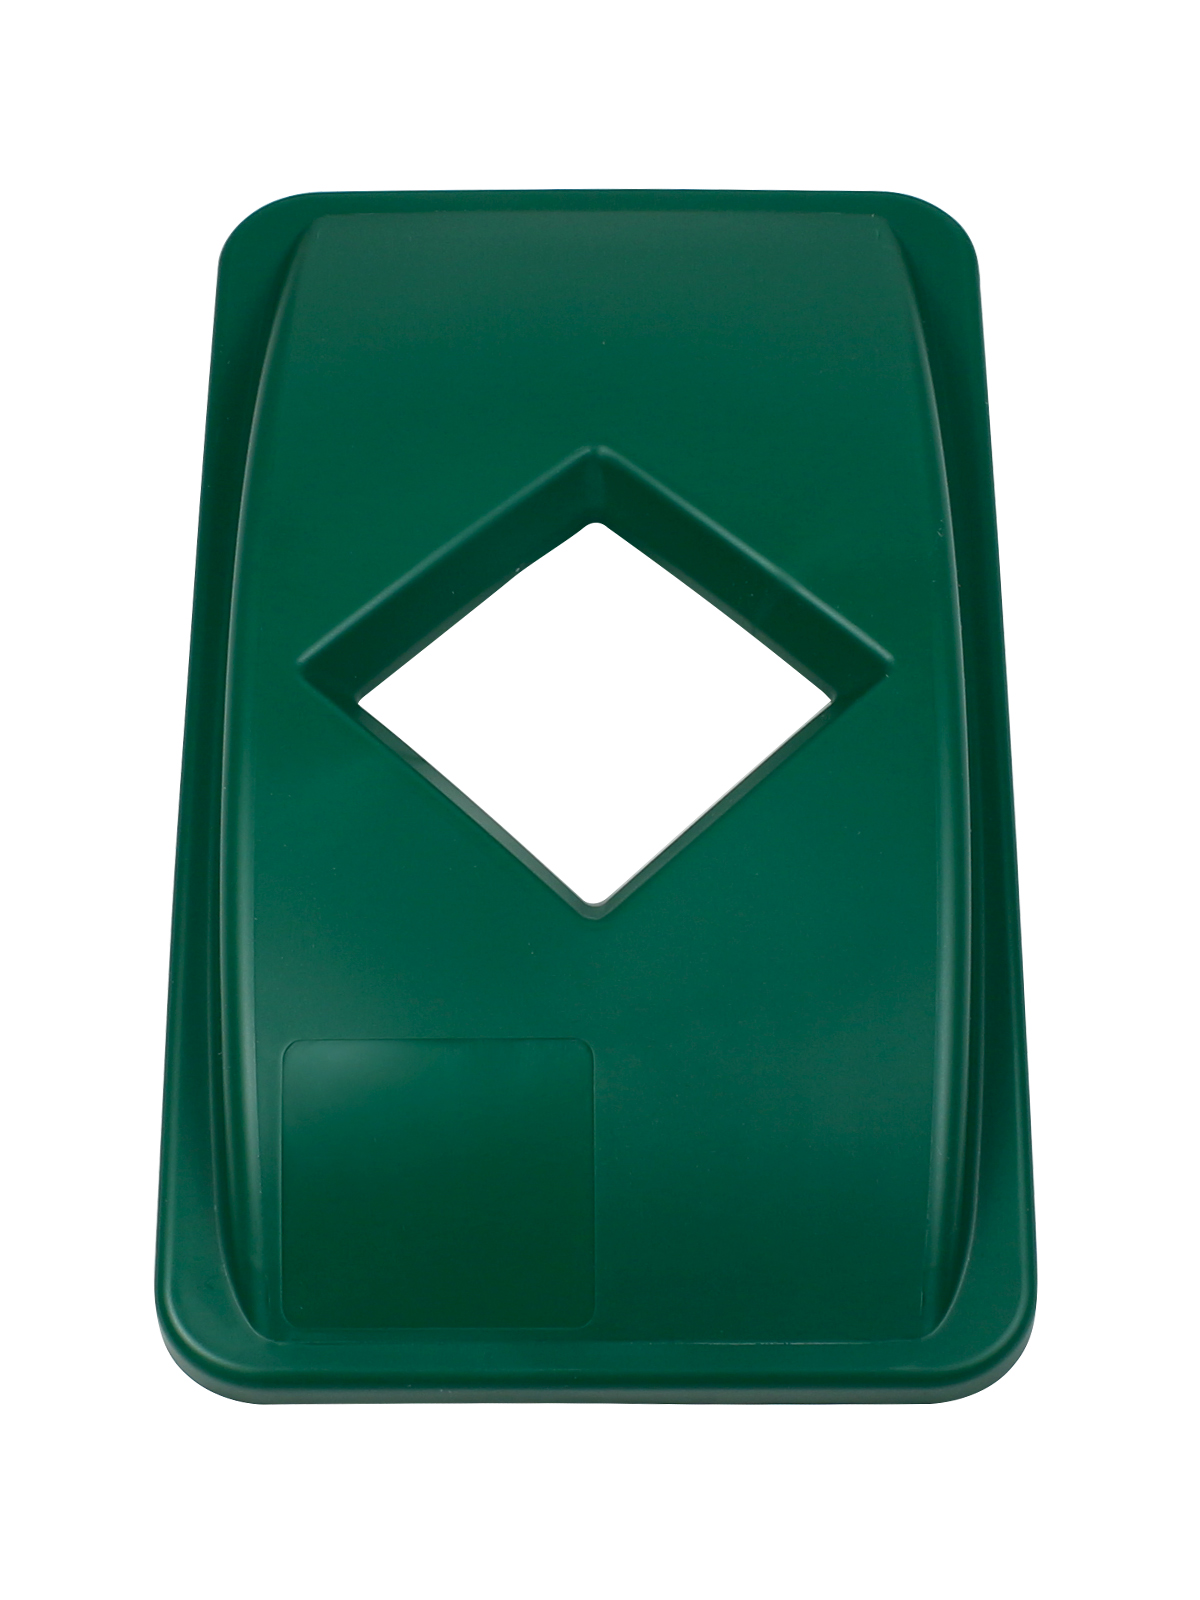 WASTE WATCHER - Lid - Diamond - Dark Green